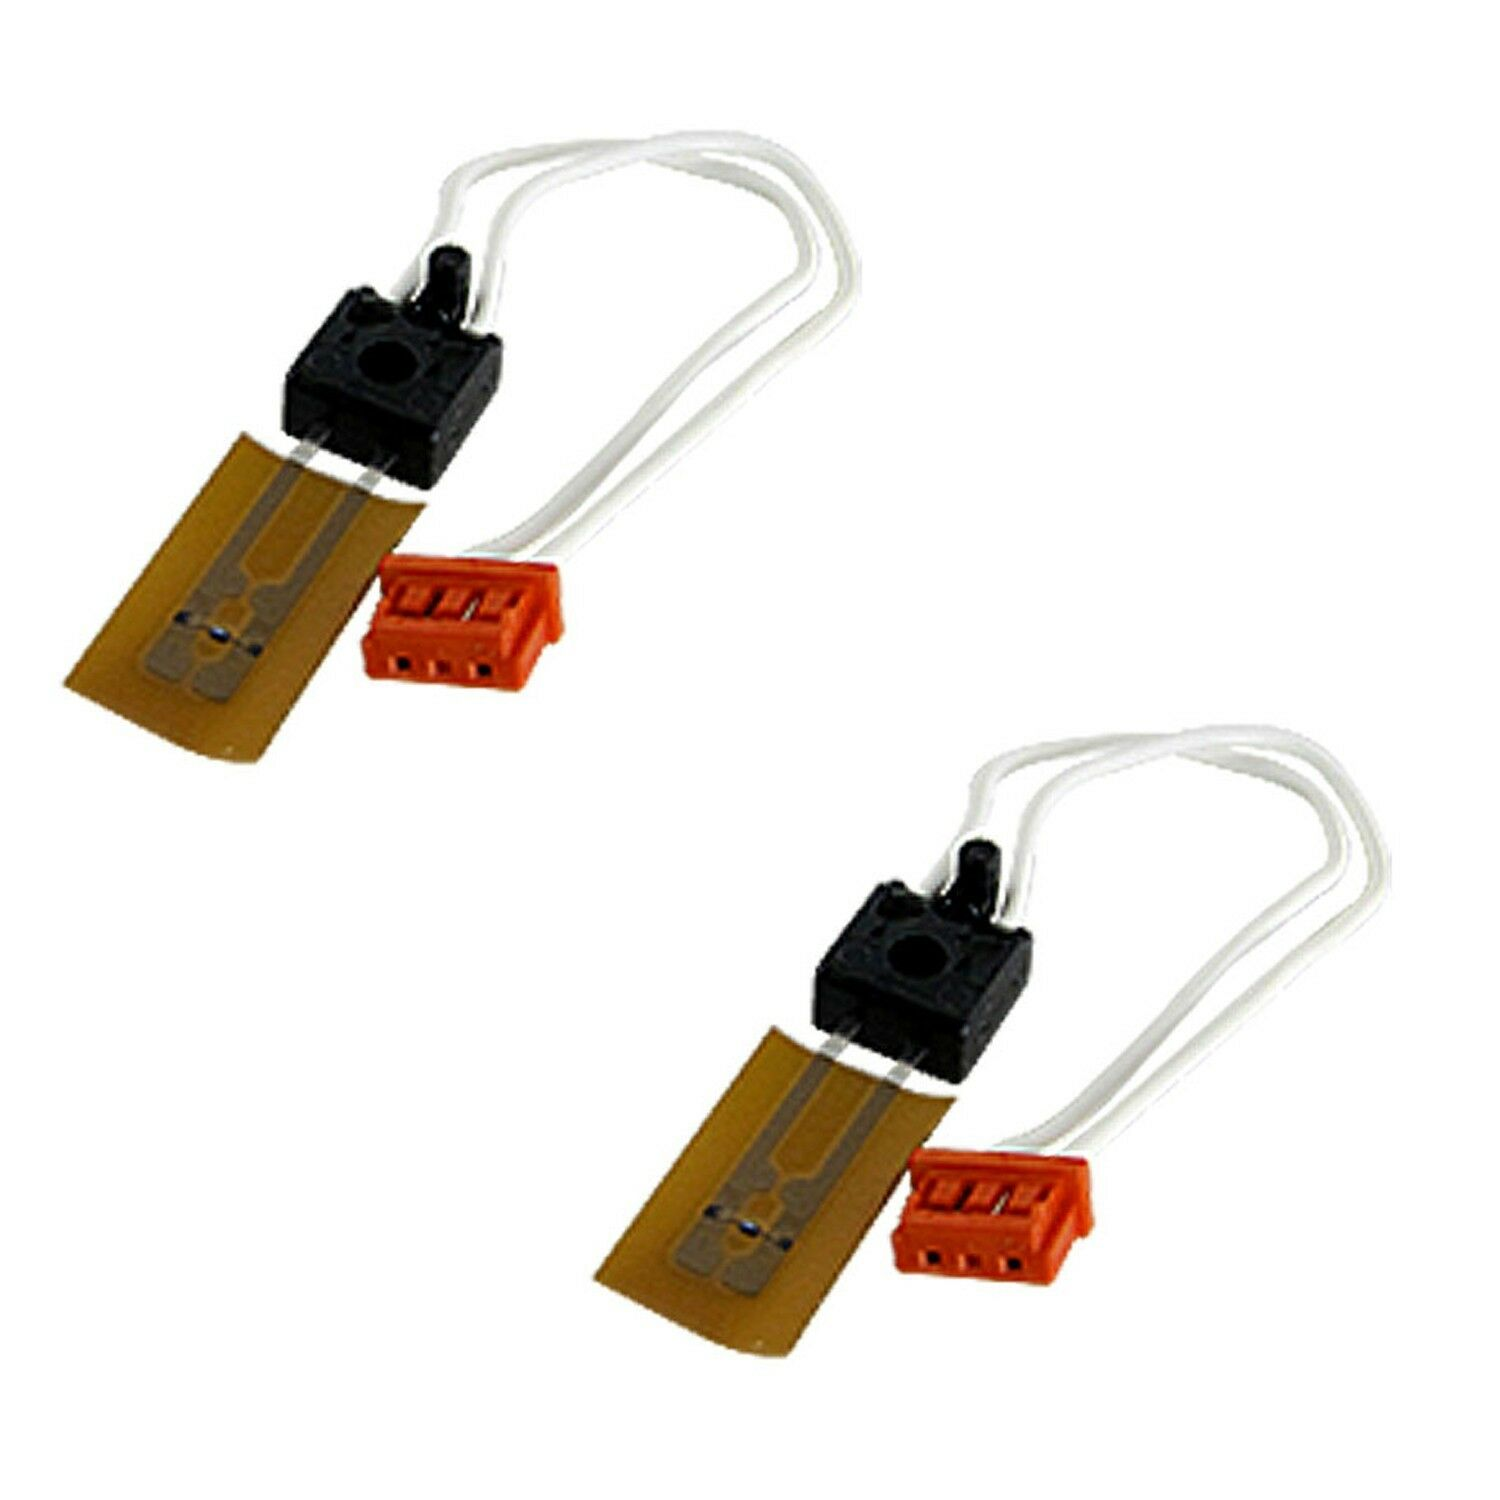 2PK FUSER THERMISTOR REAR RICOH AFICIO MP3350SP MP3350B MP3010 MP 2852 2851 2510